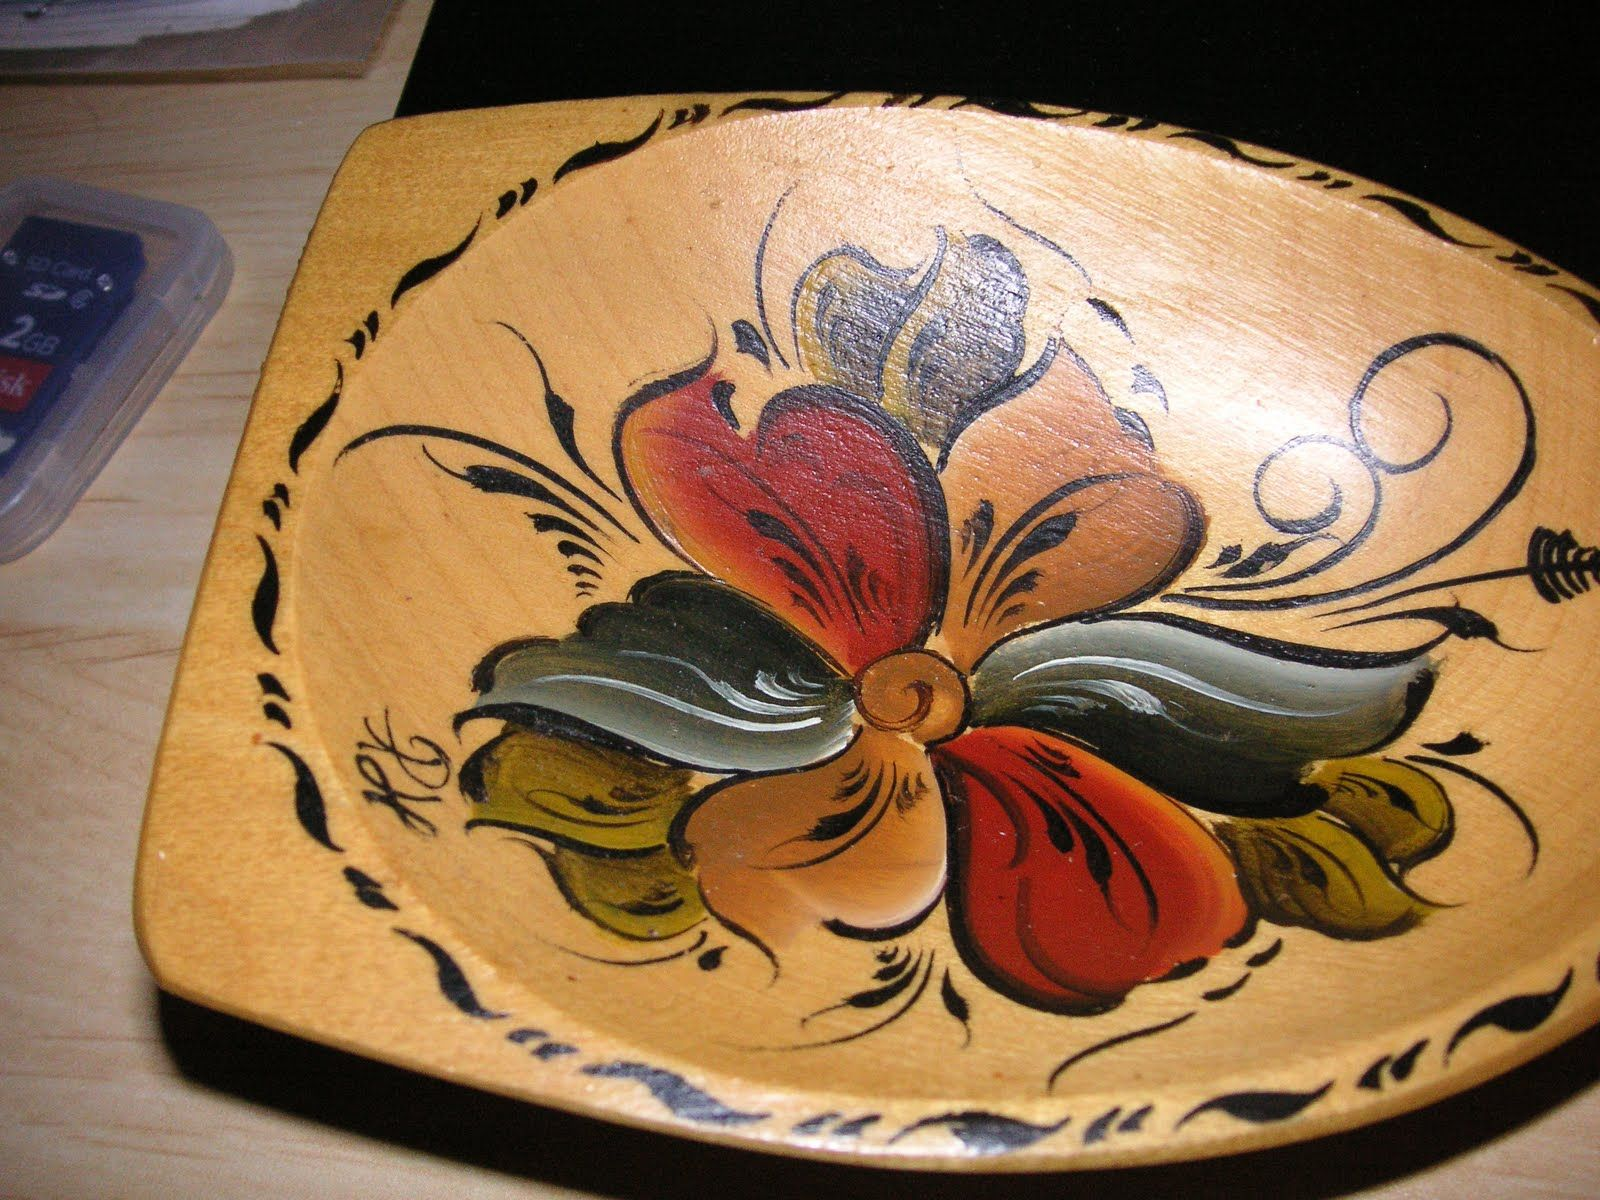 This is what I think of when I think of rosemaling, and I LOVE it!